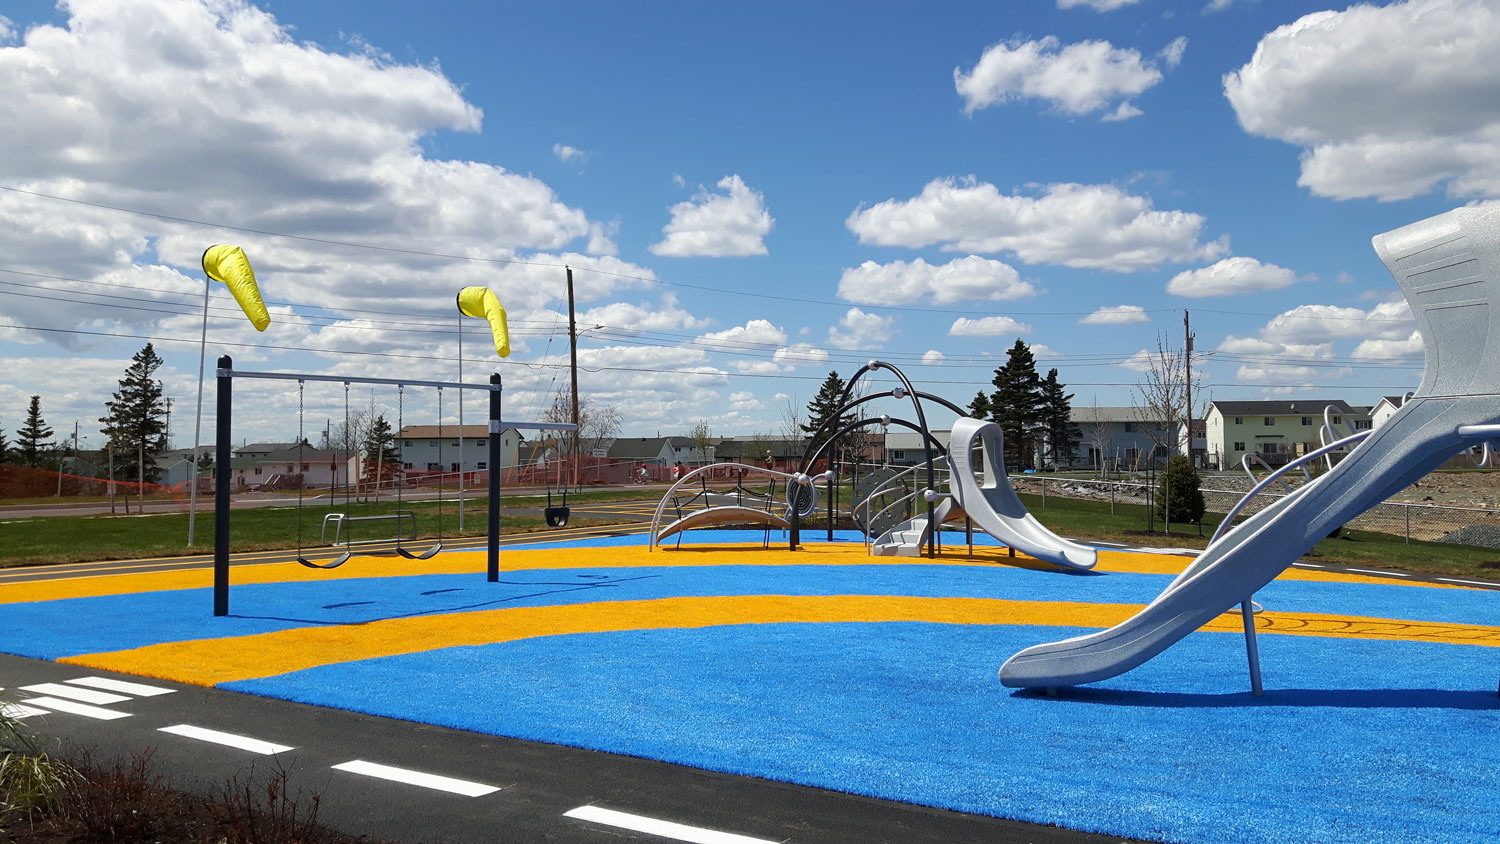 Colourful playground surfacing contrasts with industrial-coloured play equipment.